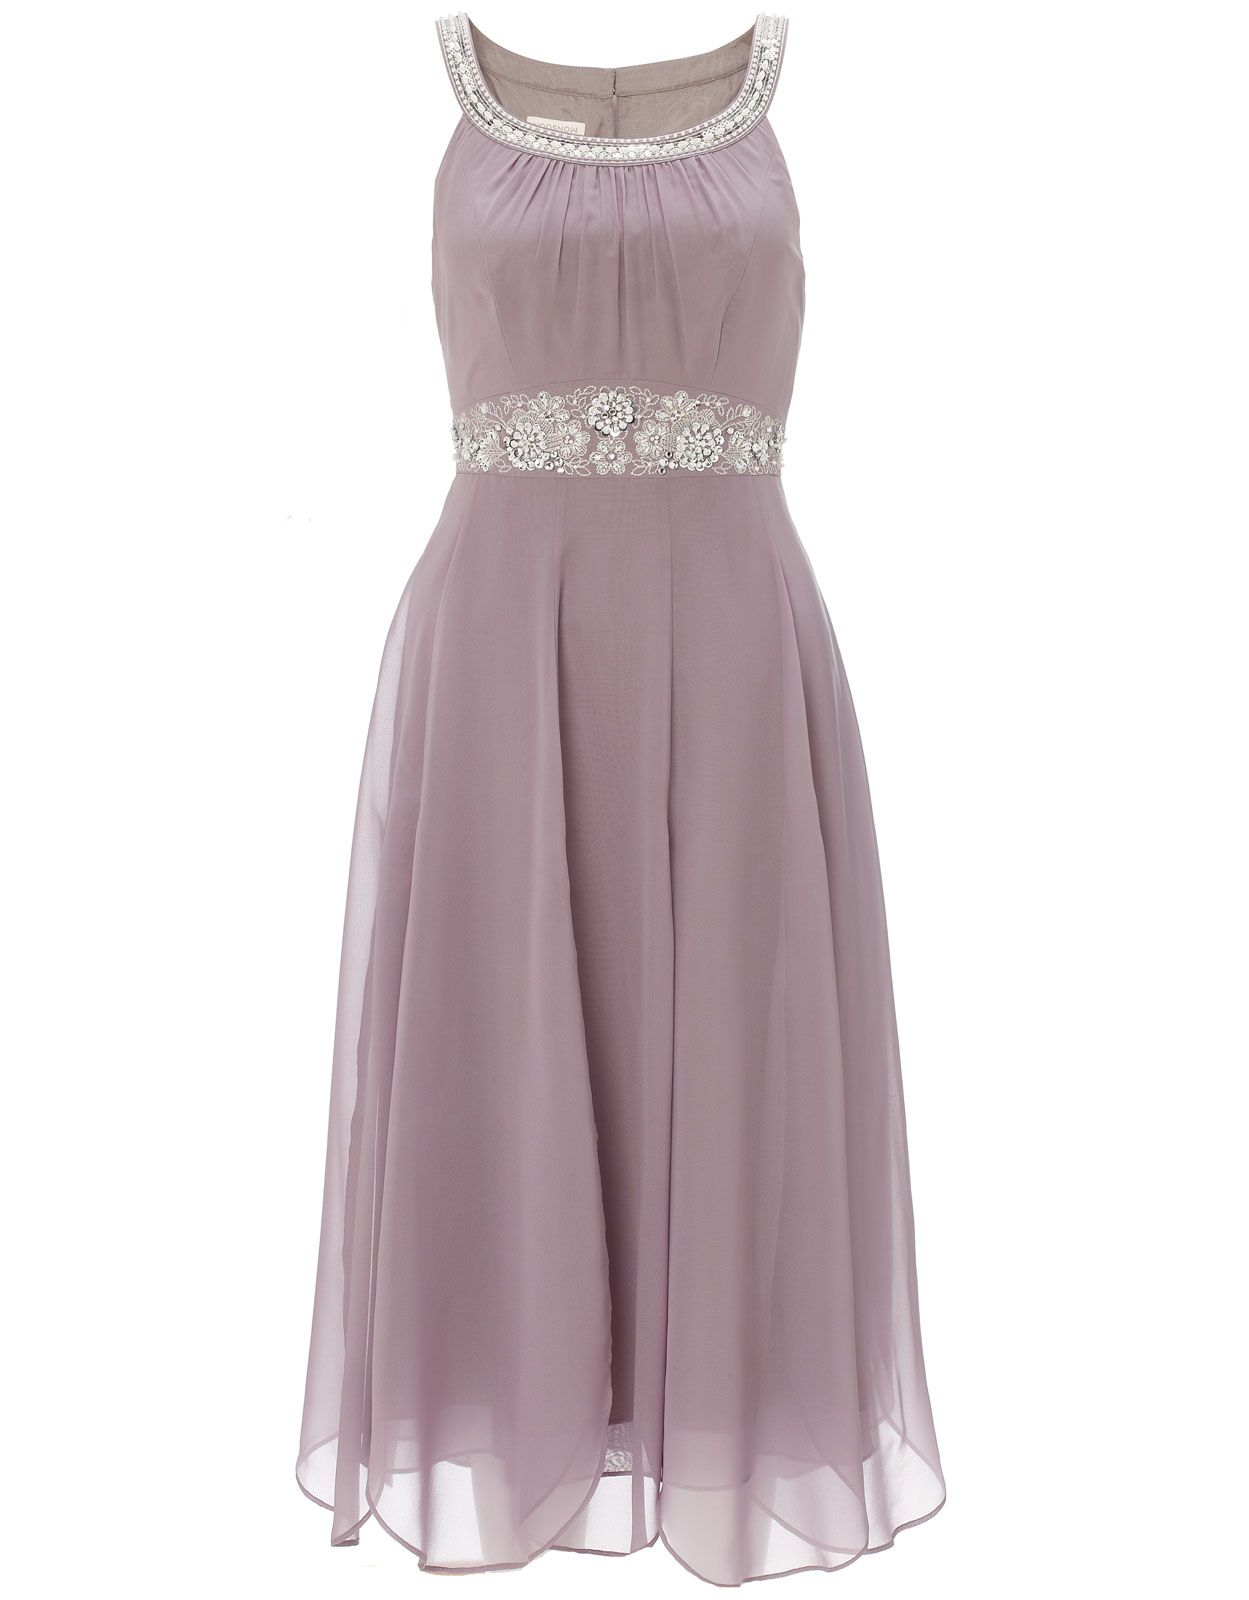 Ariel dress grey monsoon this would be a great prom dress bridesmaid dresses meet this seasons key trends to make wedding shopping so much easier these are the dresses guaranteed to make your big day stylish ombrellifo Choice Image